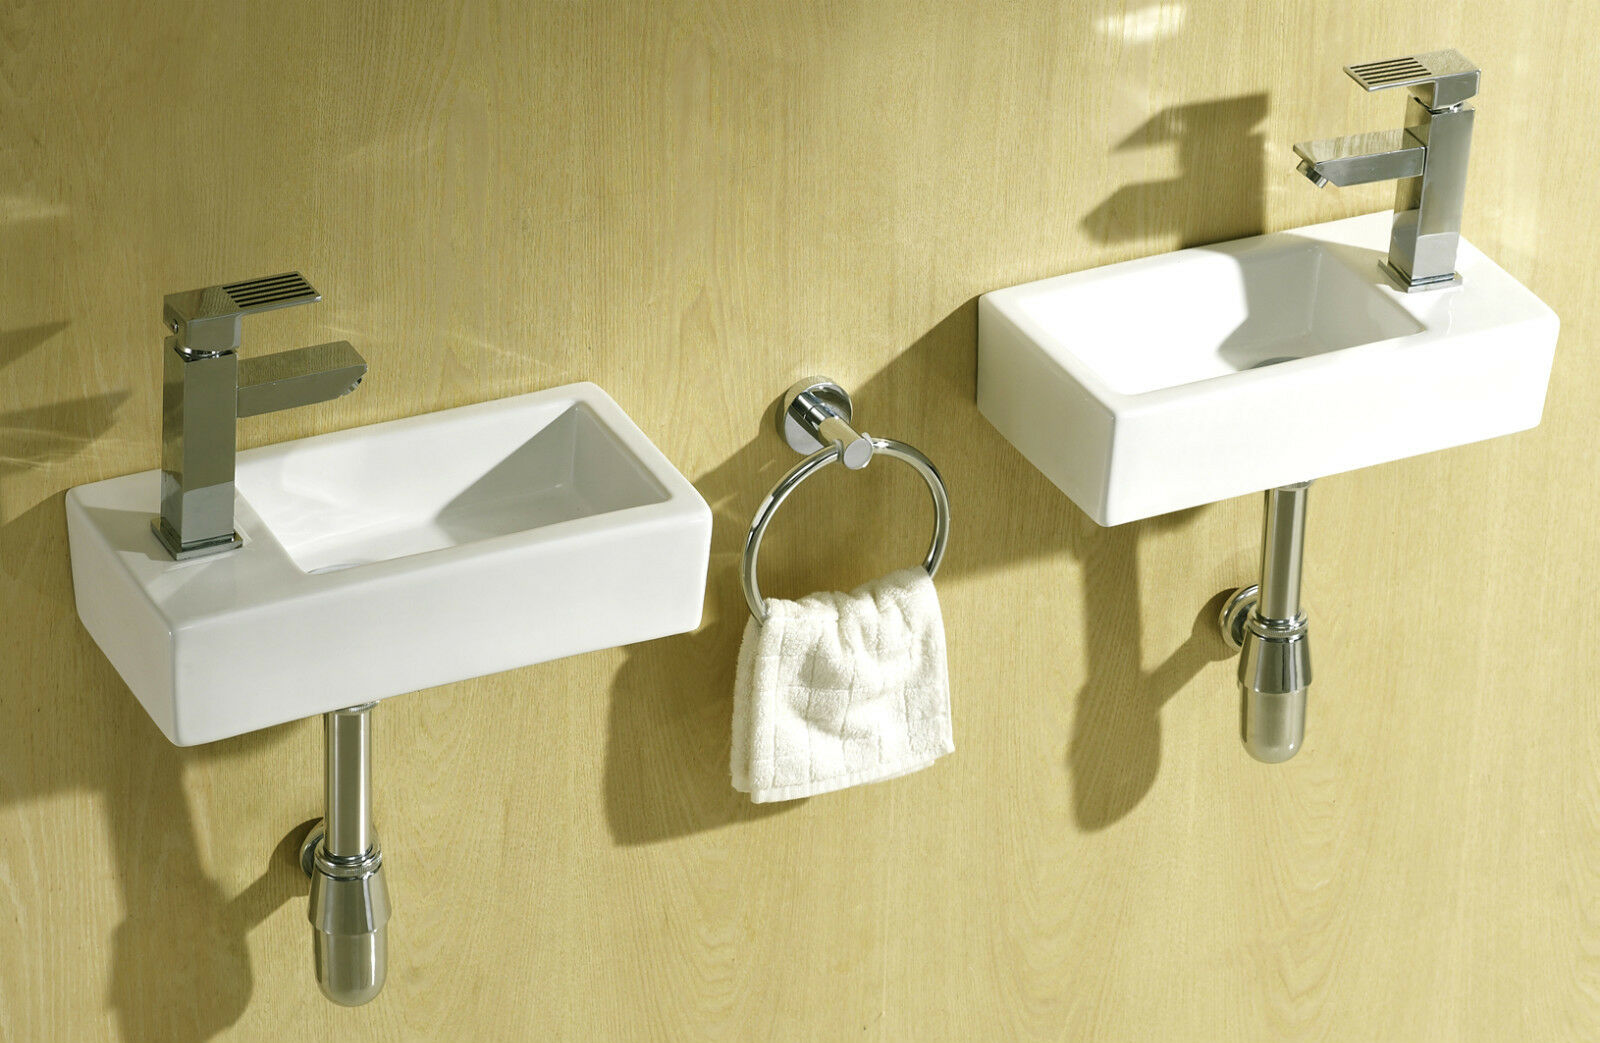 Small compact square rectangle cloakroom basin bathroom sink wall hung 375 x 185 ebay - Slim cloakroom basin ...